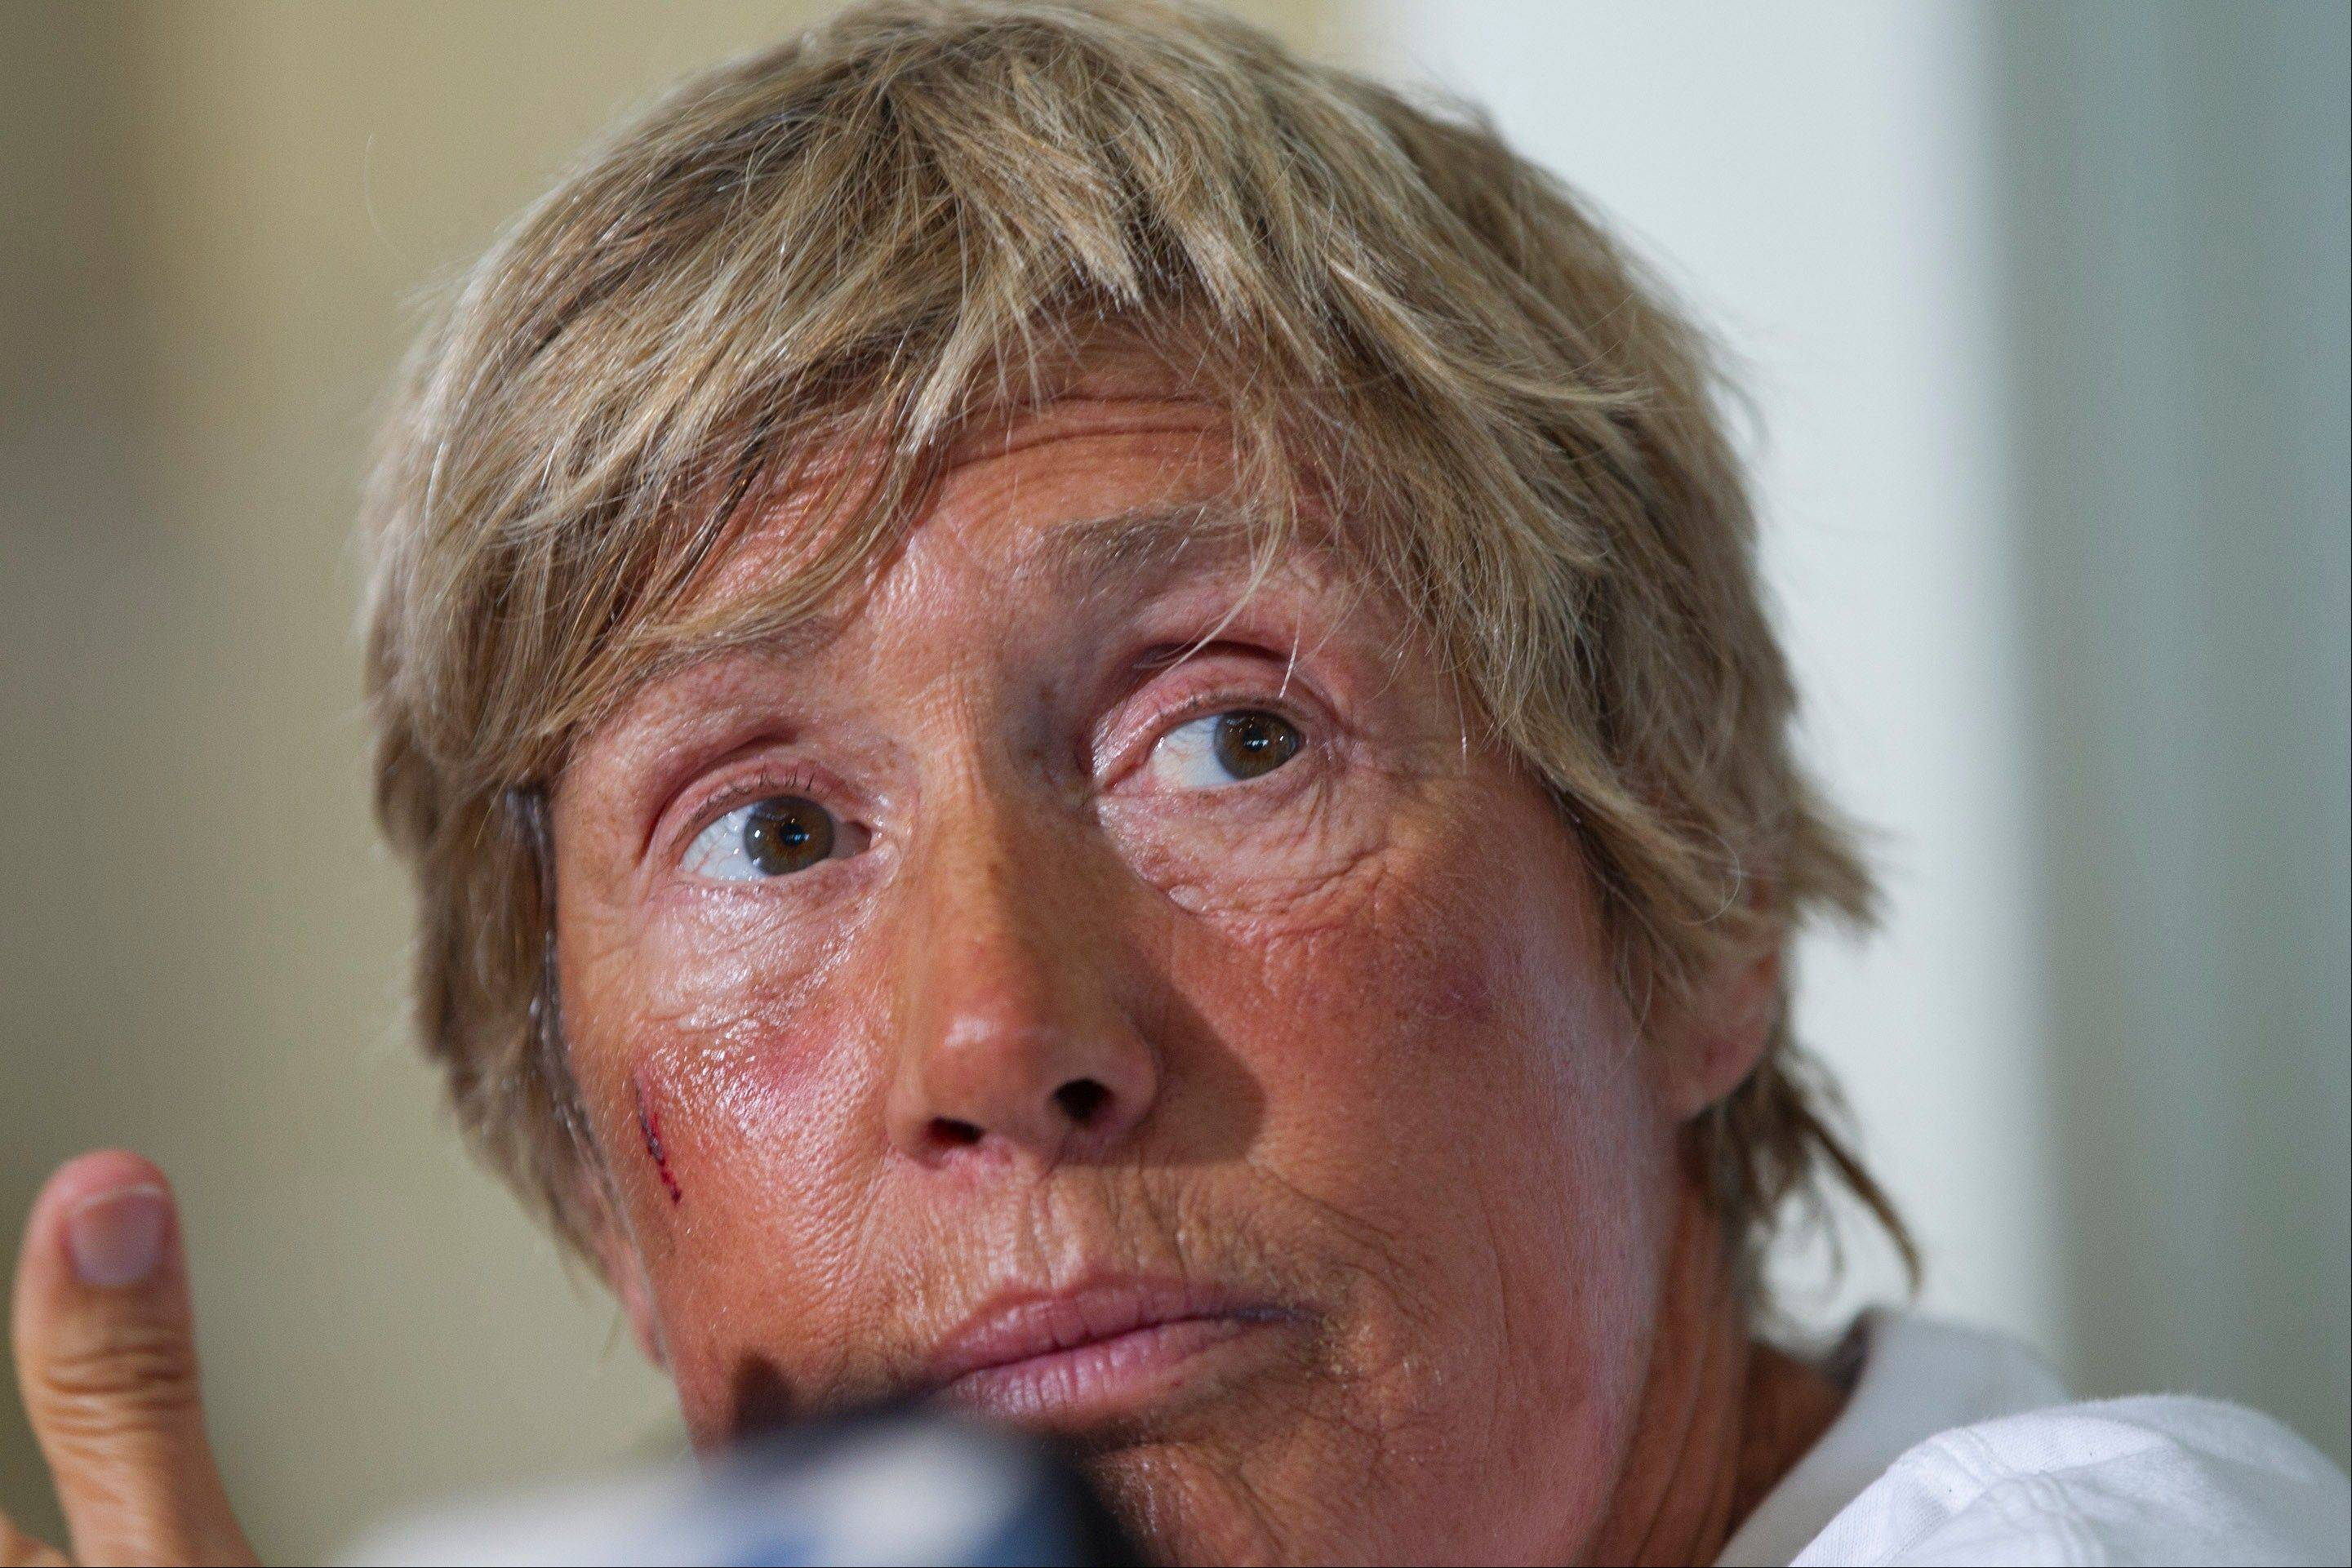 Endurance swimmer Diana Nyad talks to the media about her record-setting swim from Cuba to Florida during a press conference in Key West, Fla., Tuesday. She said the biggest challenge was swallowing large amounts of seawater, which made her vomit often.